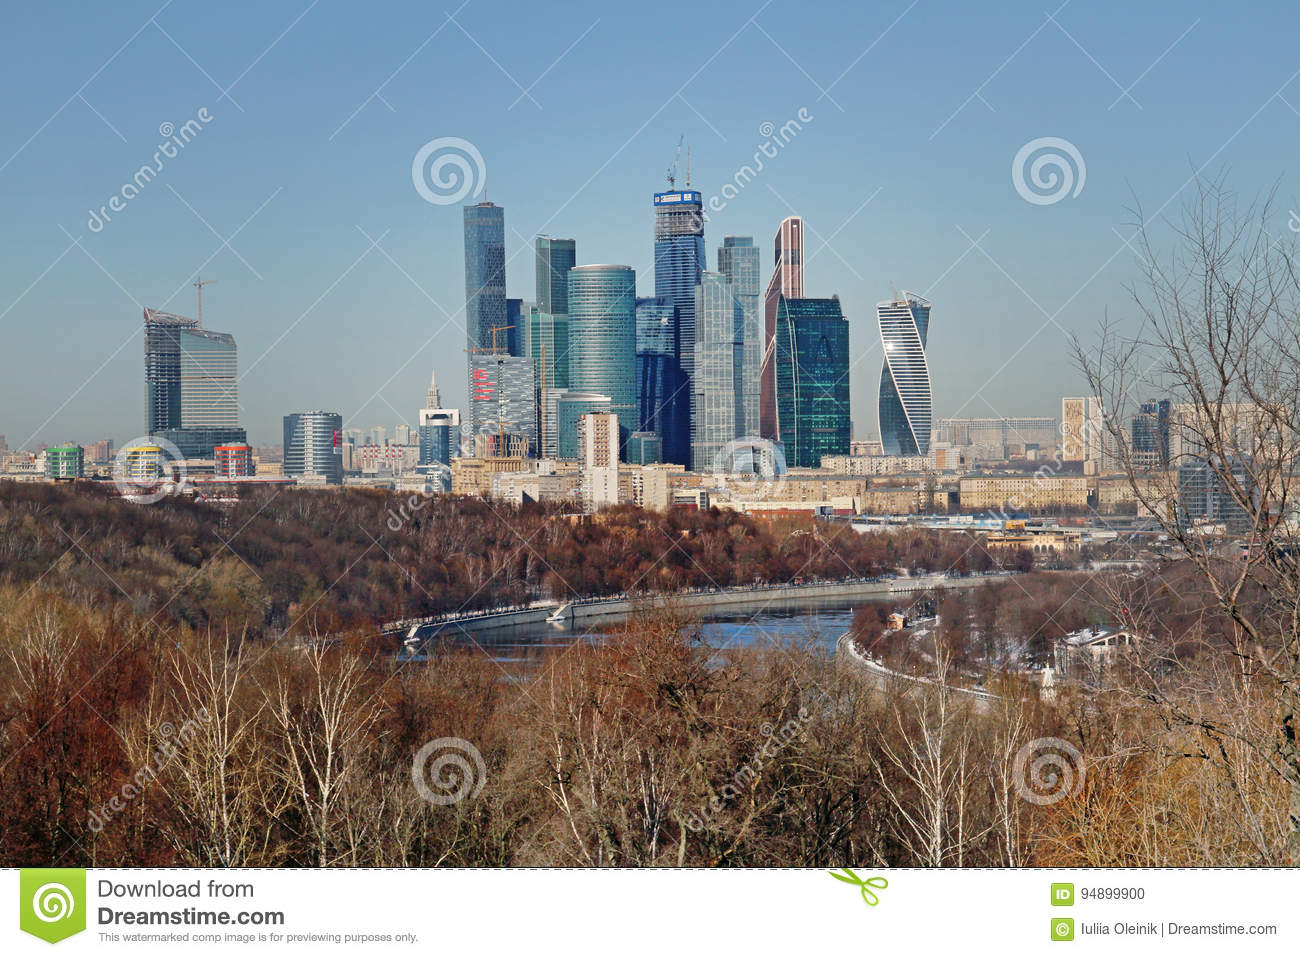 Moscow, Vorobyevy Gory: observation deck 23